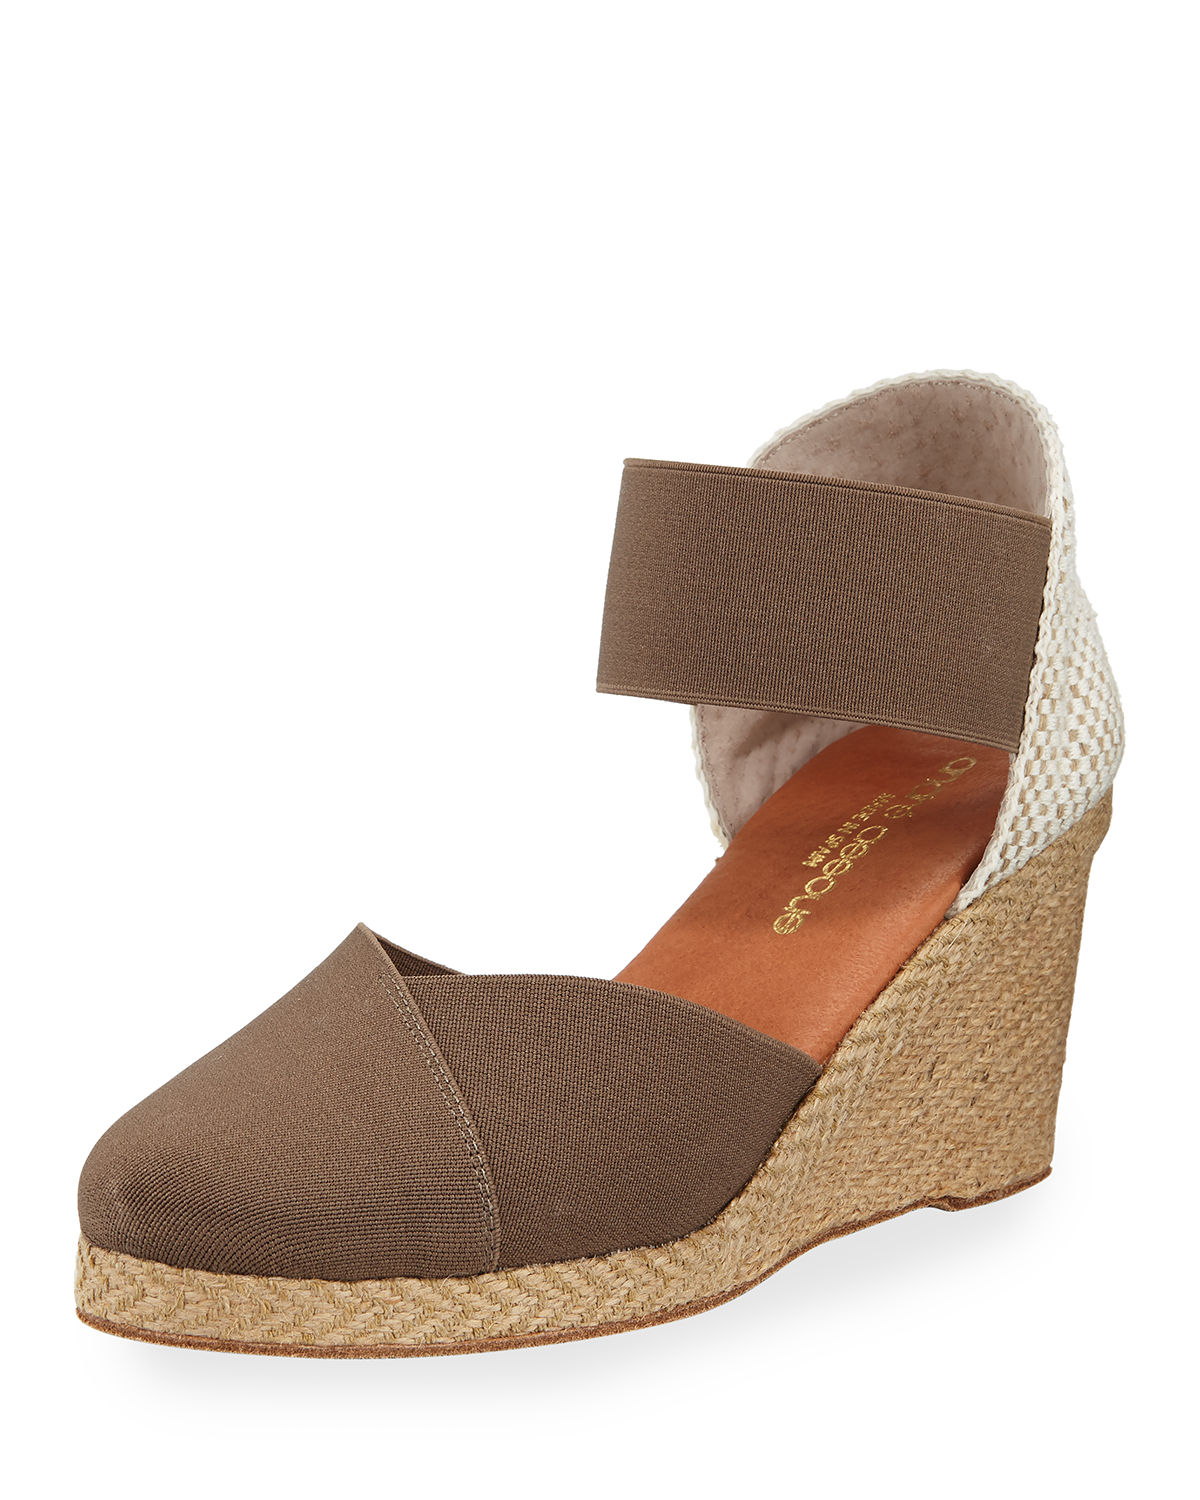 0d2e18b09a5 Women's Anouka Mid Wedge Espadrilles in Taupe